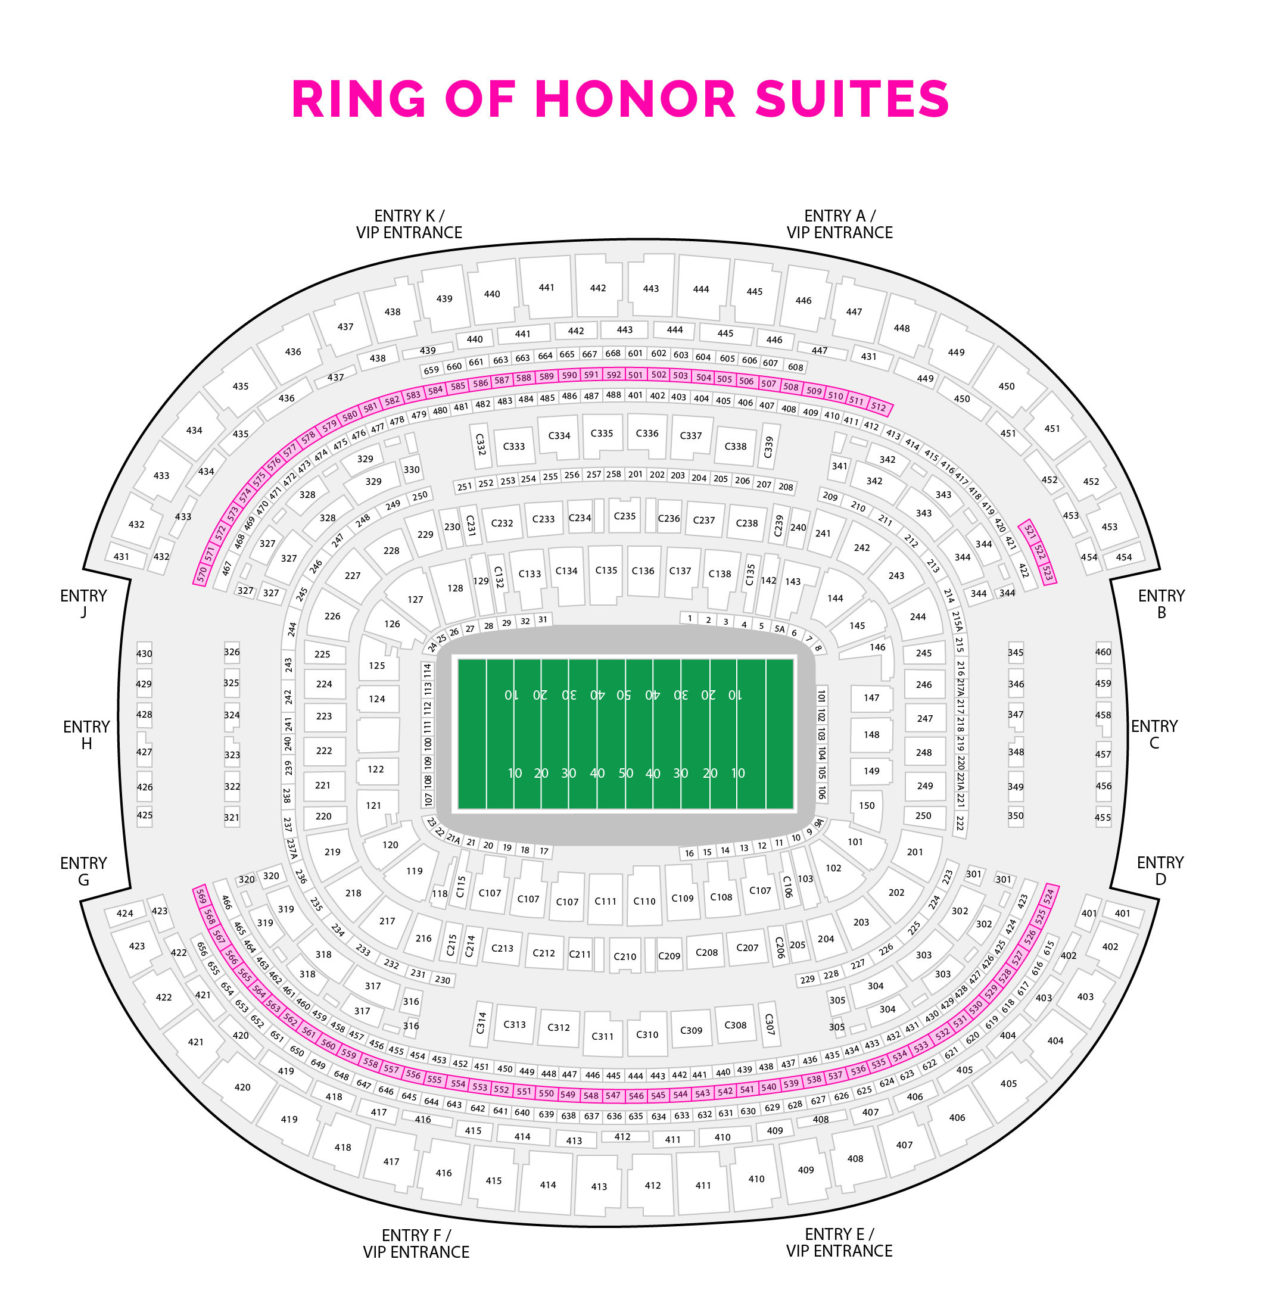 Cowboys Ring of Honor Suites